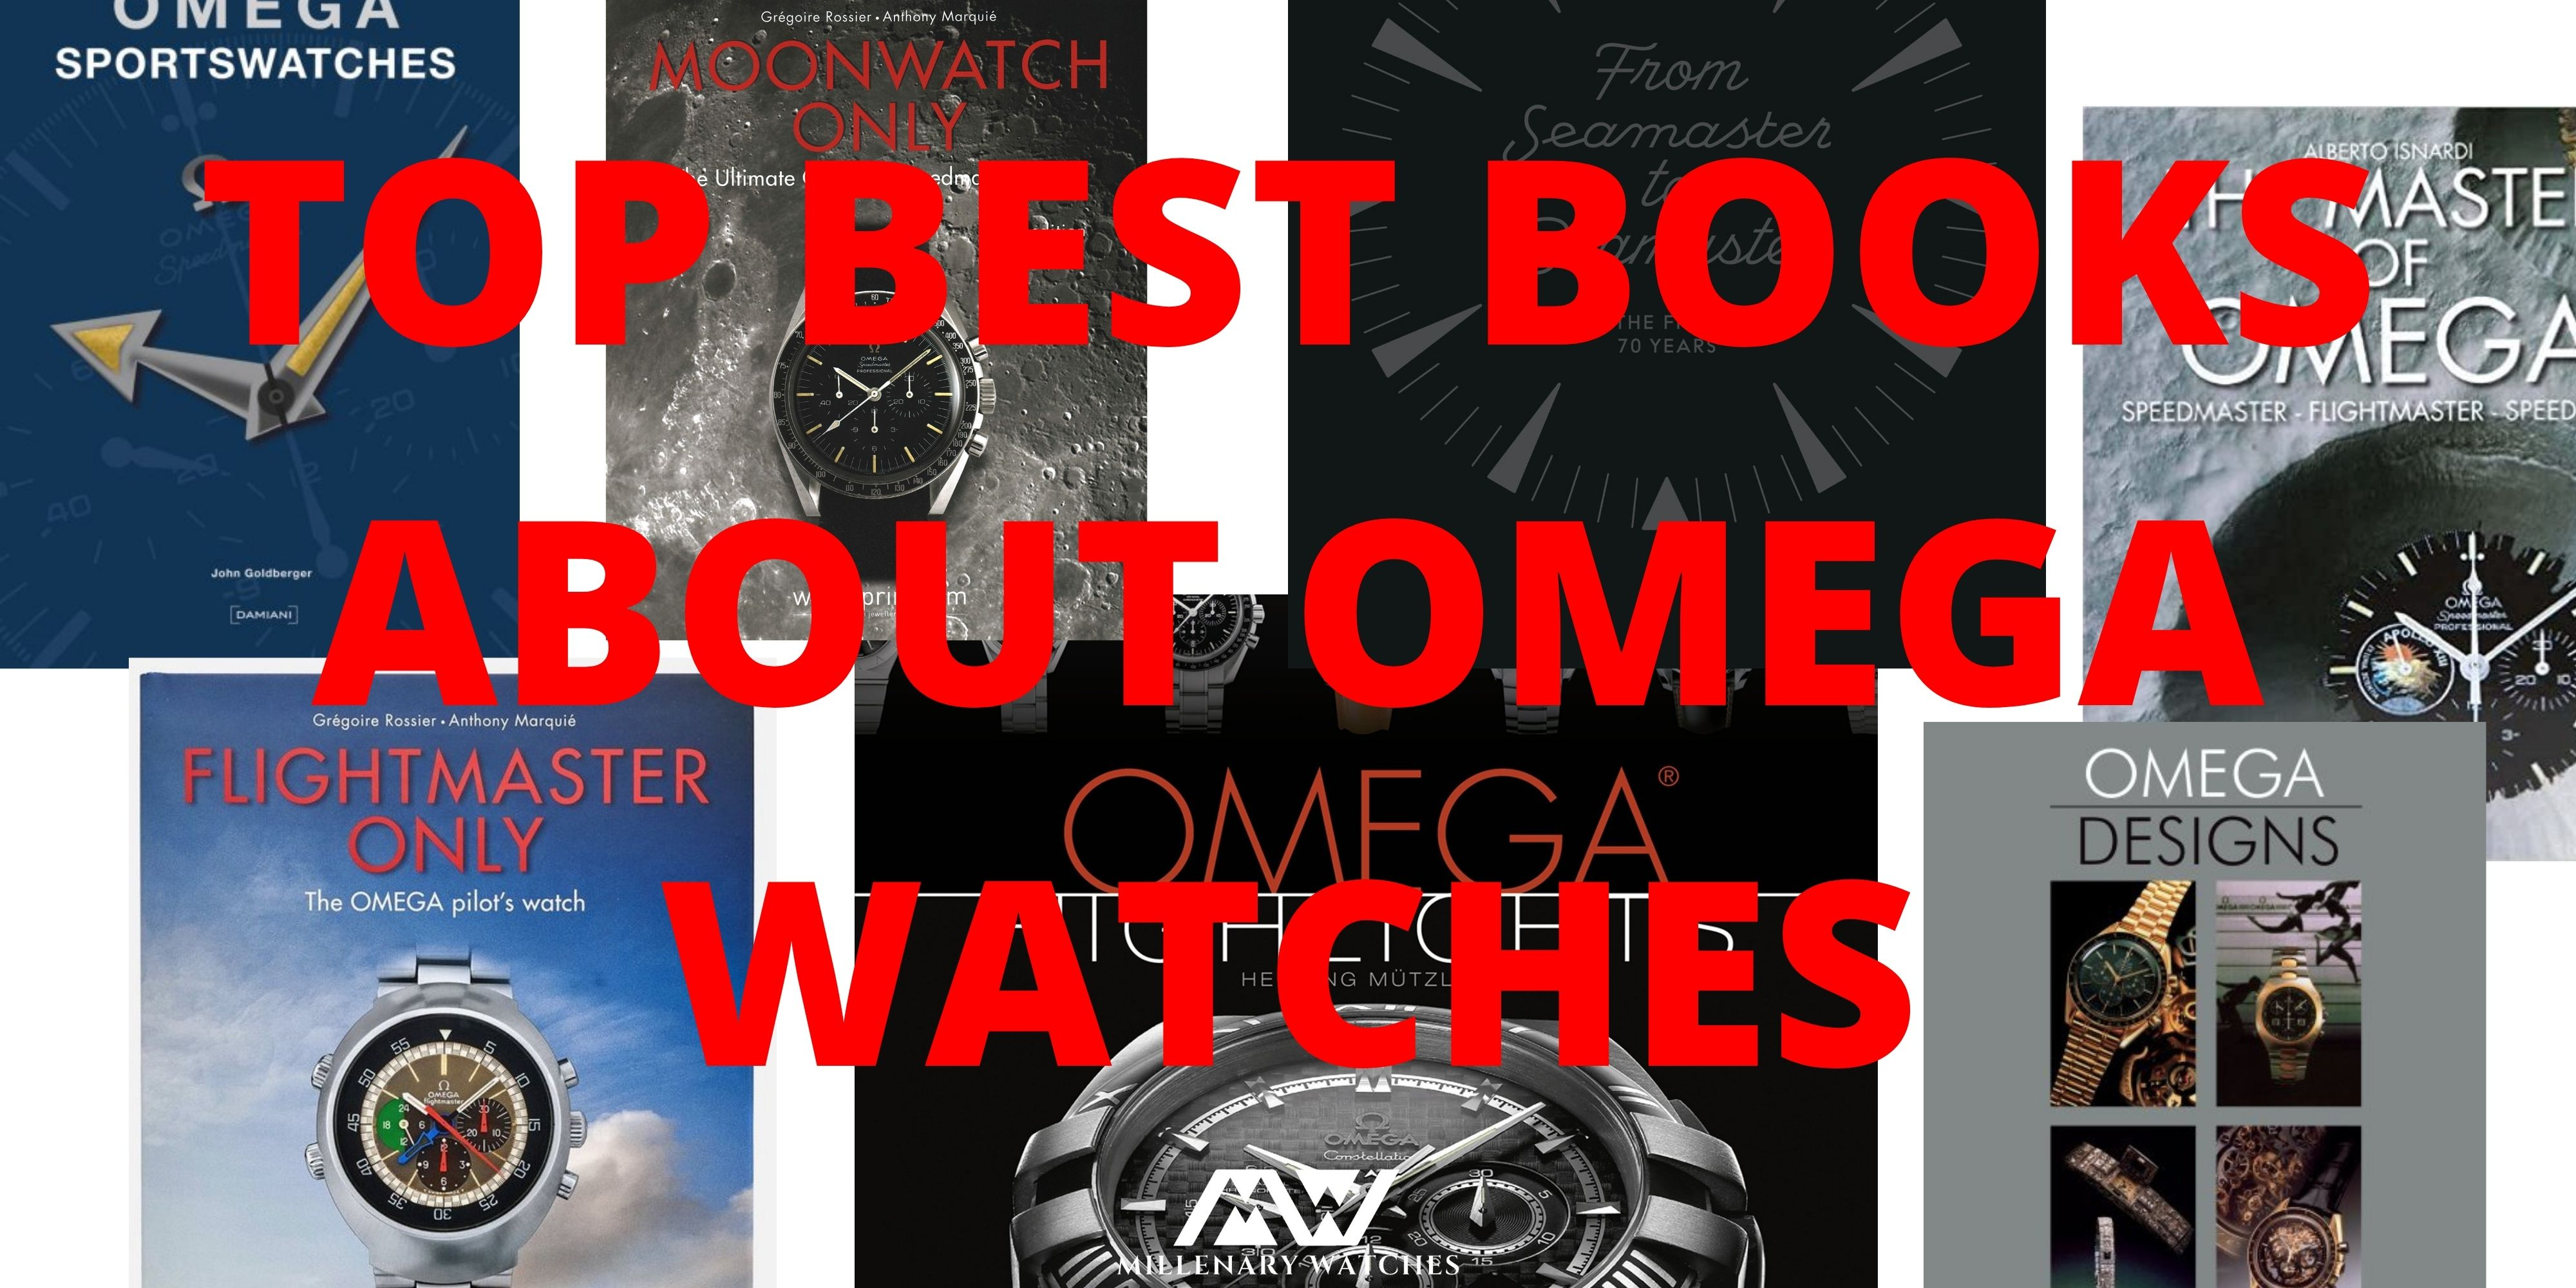 TOP BEST BOOKS ABOUT OMEGA WATCHES